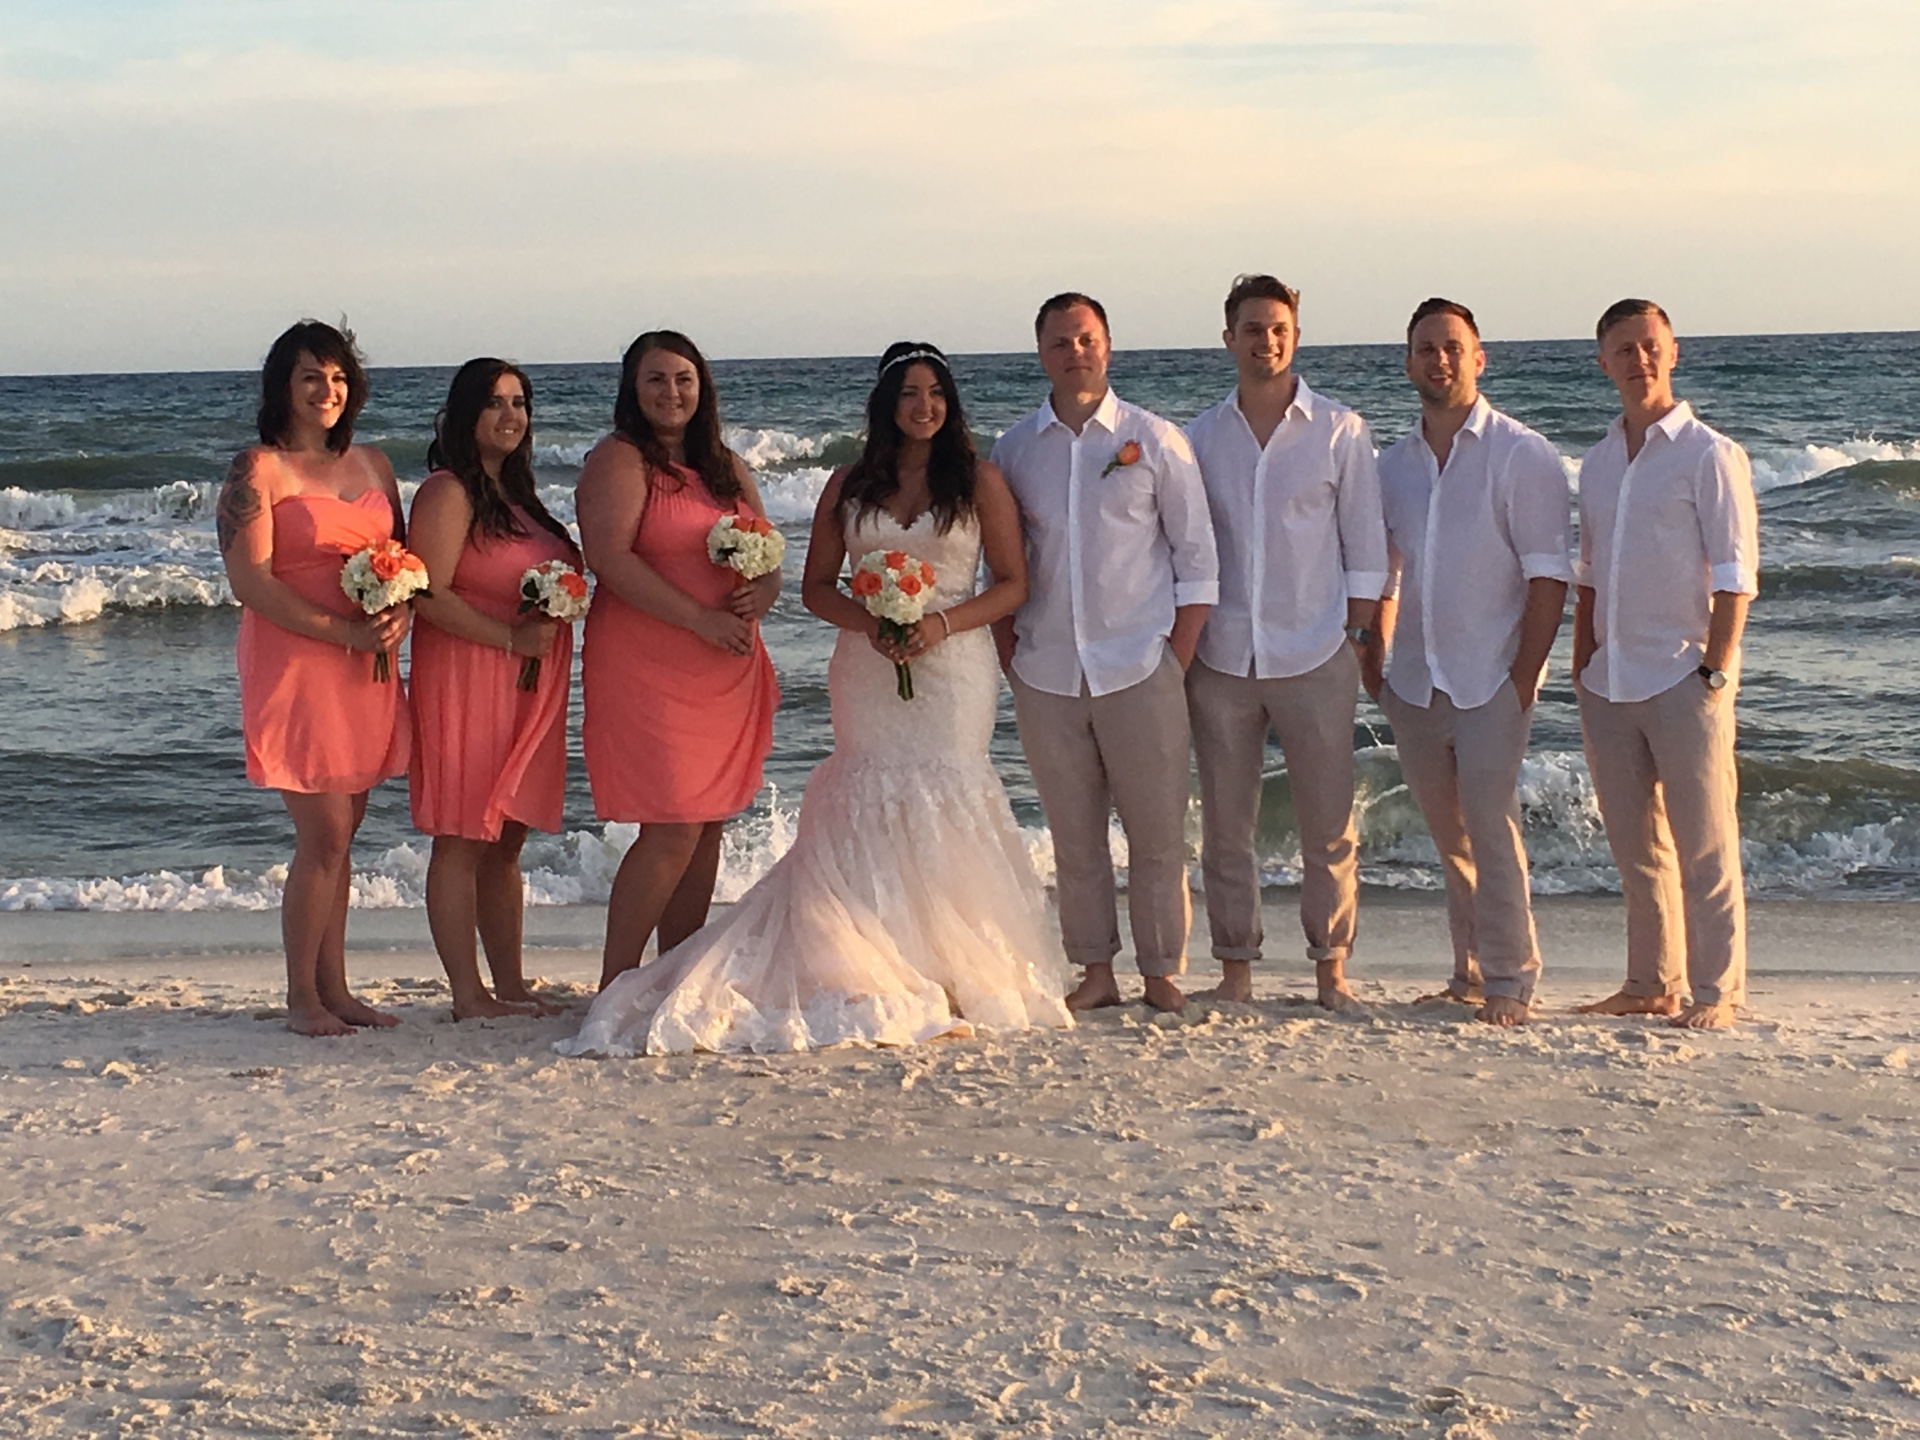 Florida part 3- Our wedding day 4/14/17